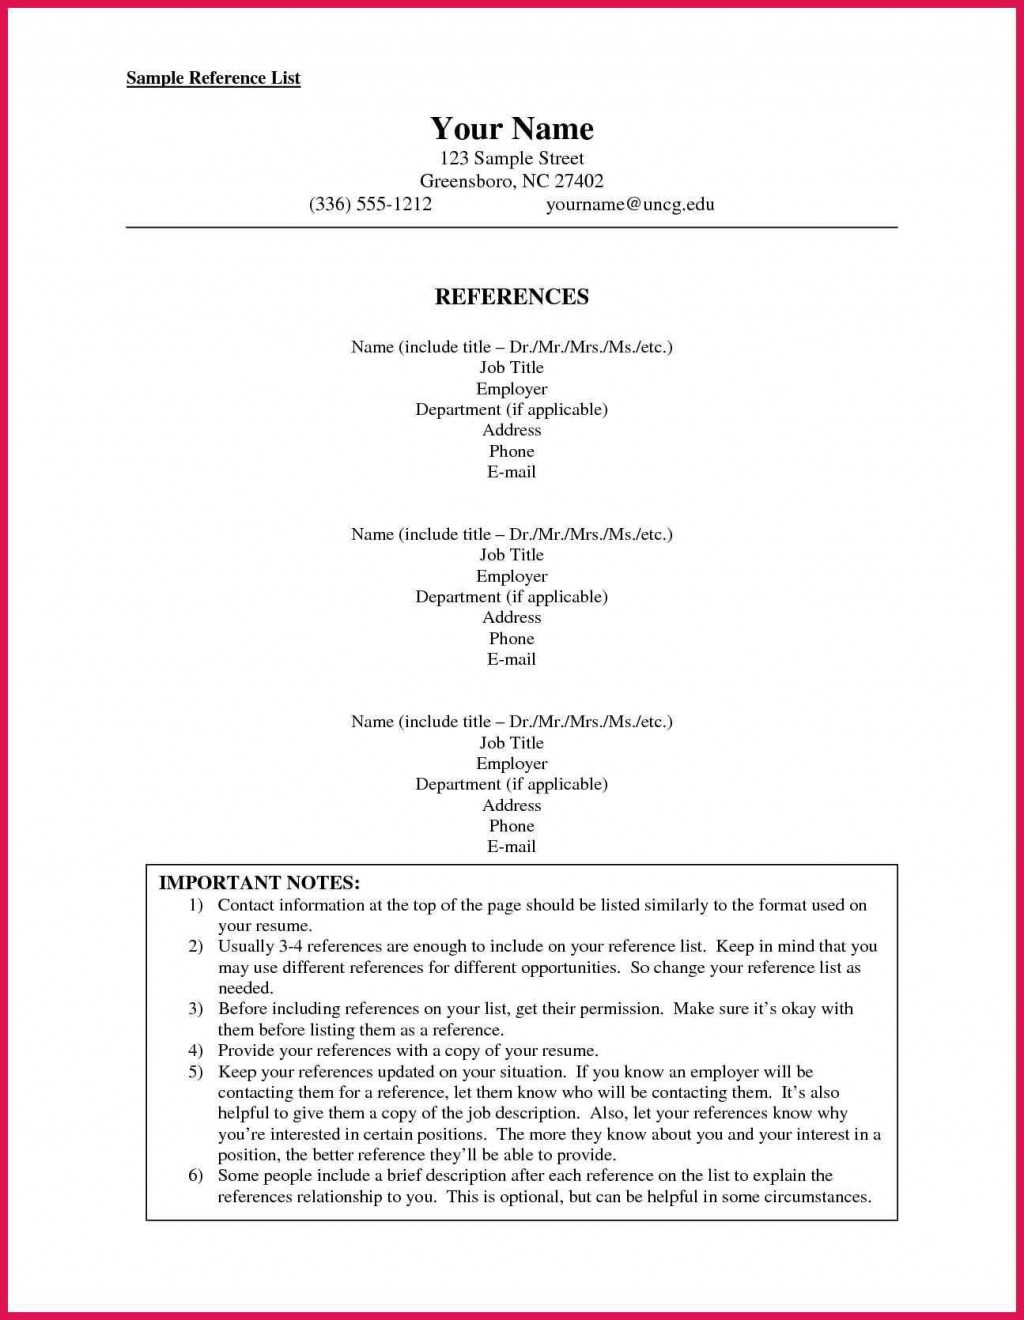 002 Dreaded List Of Reference Template High Resolution  Employment Format Professional FreeLarge